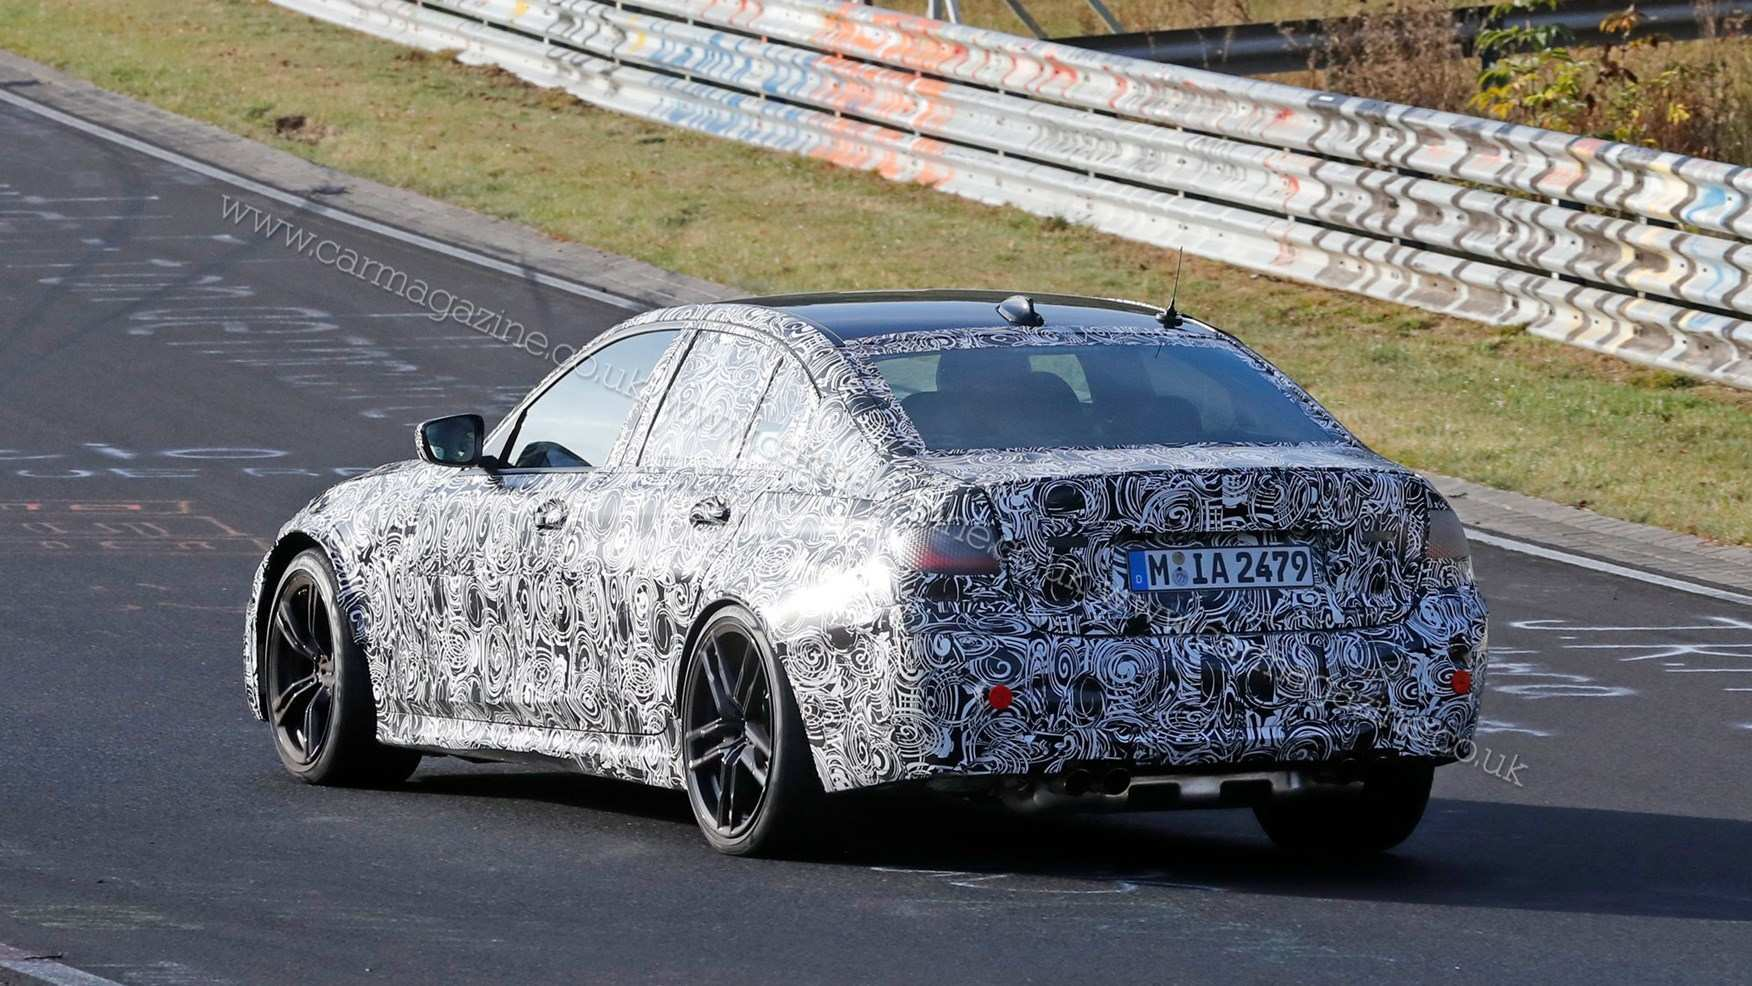 65 The Best 2020 BMW M4 All Wheel Drive Review